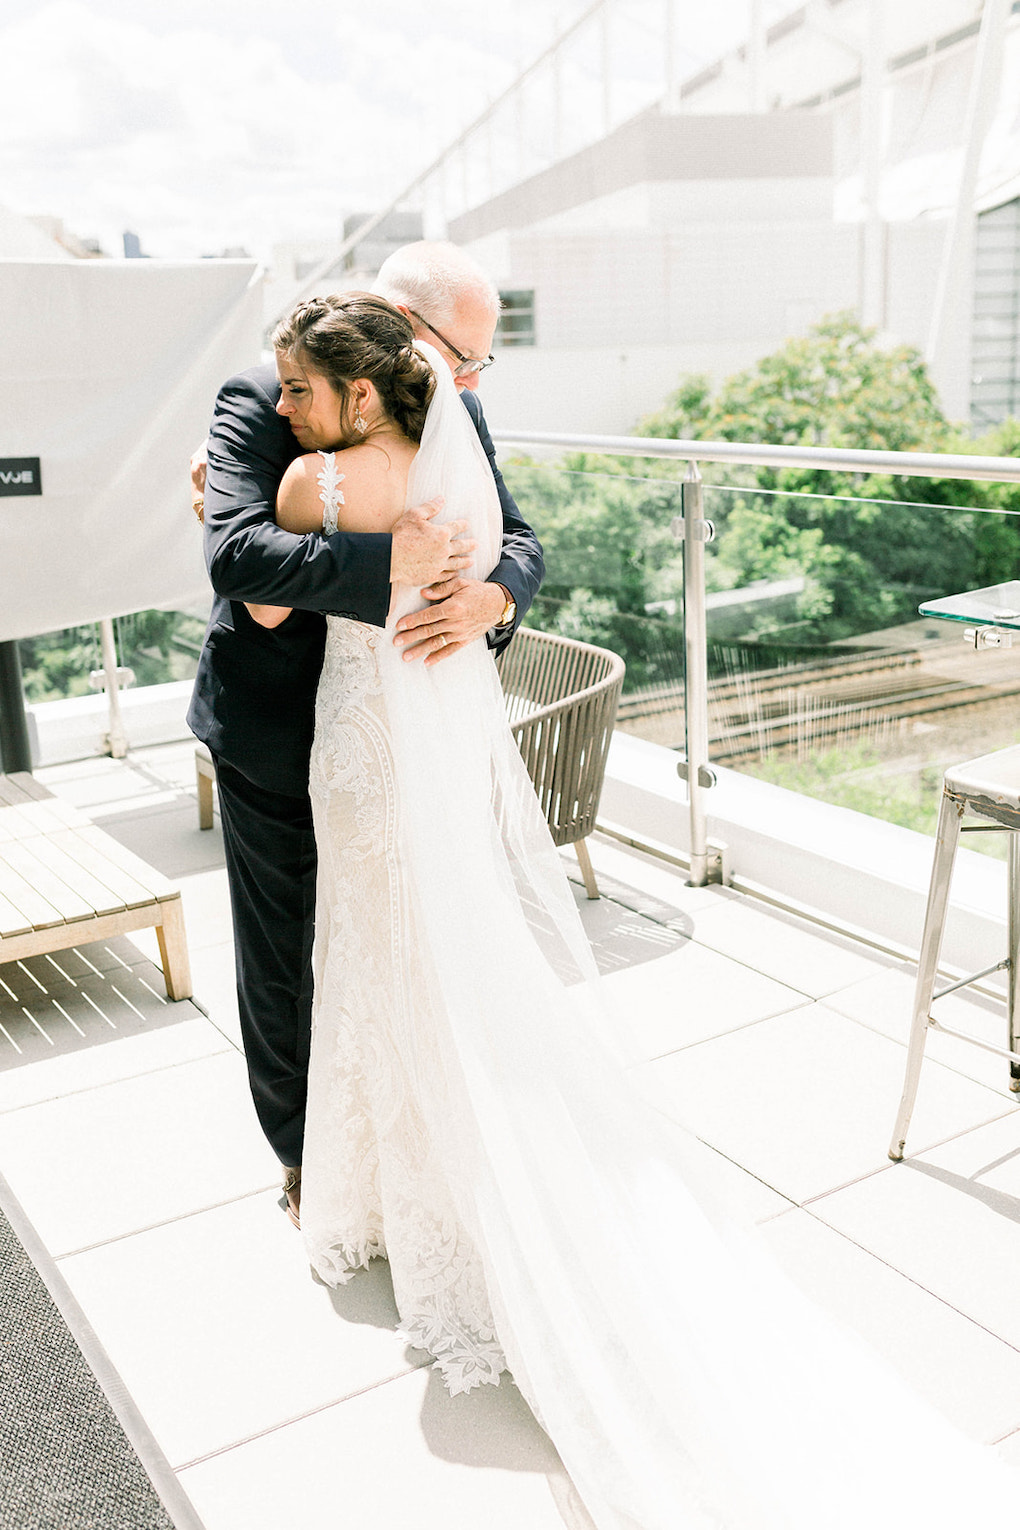 Father Daughter first look on wedding day: Pittsburgh Botanic Garden wedding planned by Exhale Events. See more wedding inspiration at exhale-events.com!